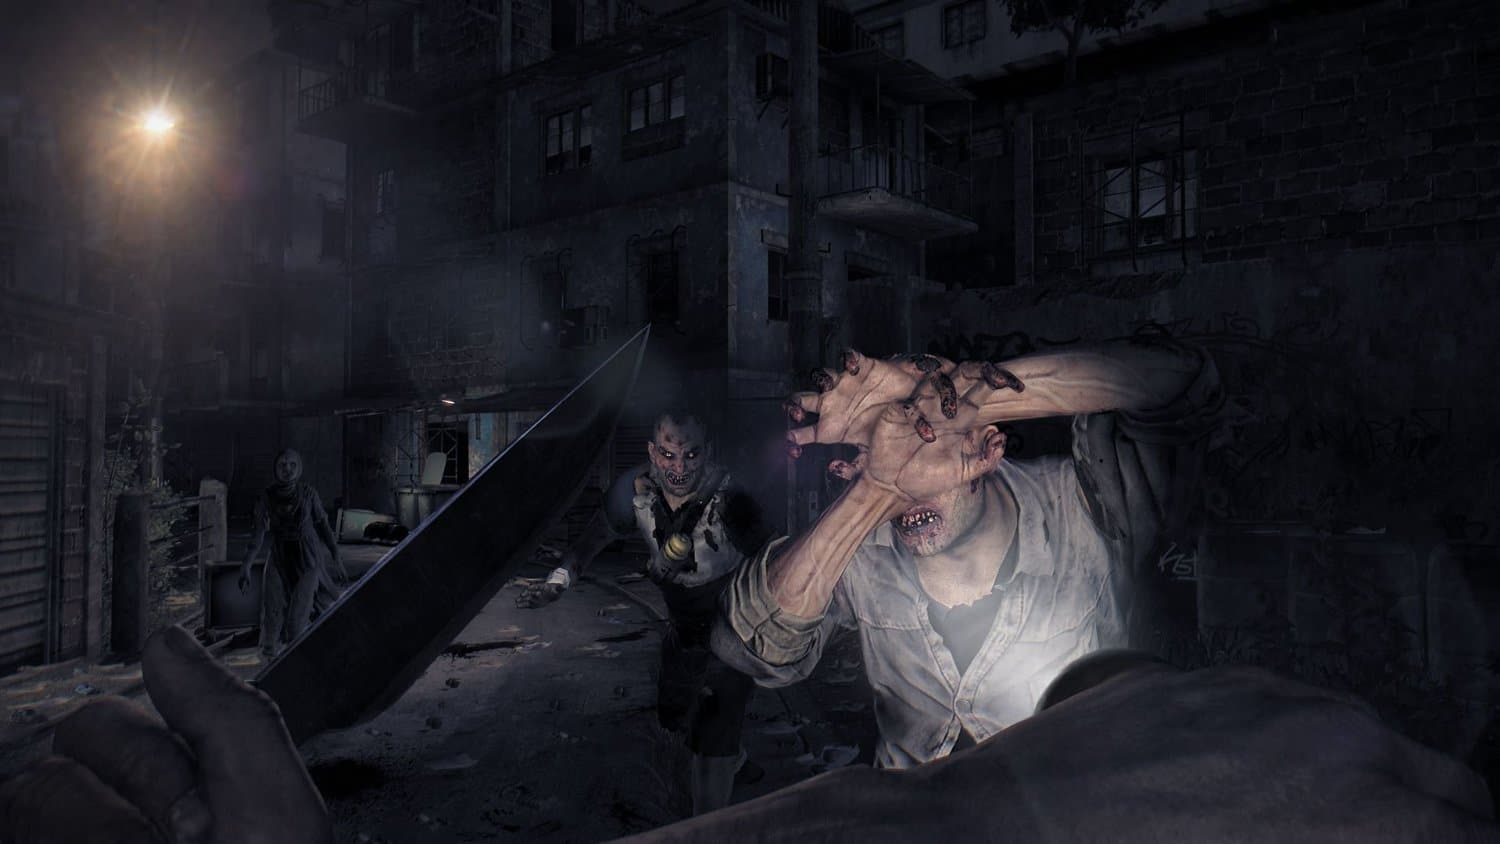 Dying Light Nighttime Action Shot